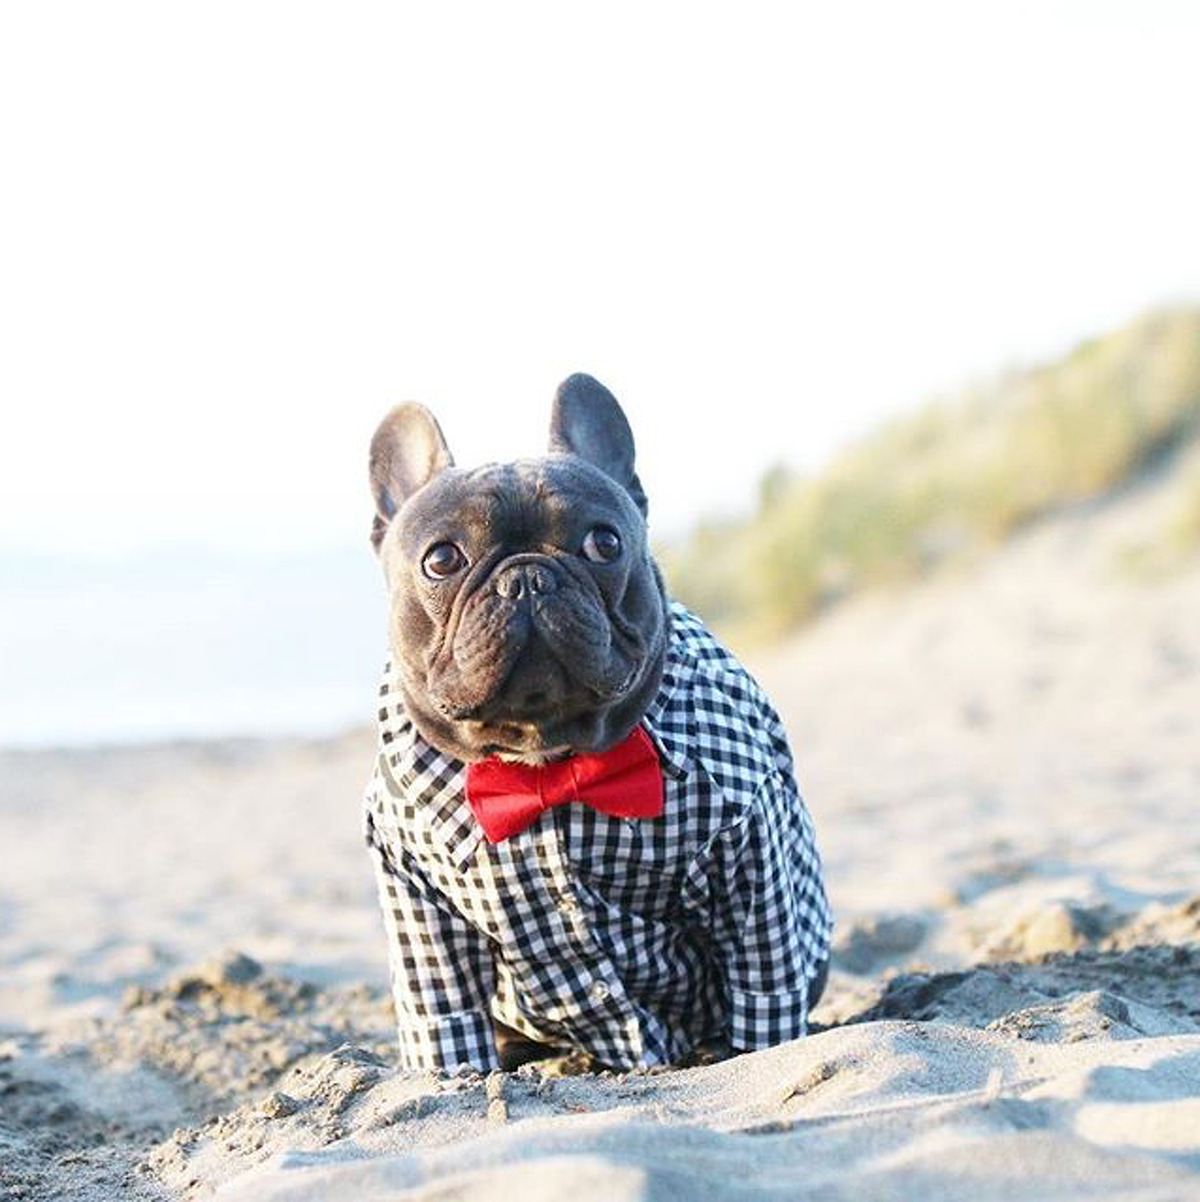 @tokifrenchie shows its OK to be dressed up at Ocean Beach in San Francisco.